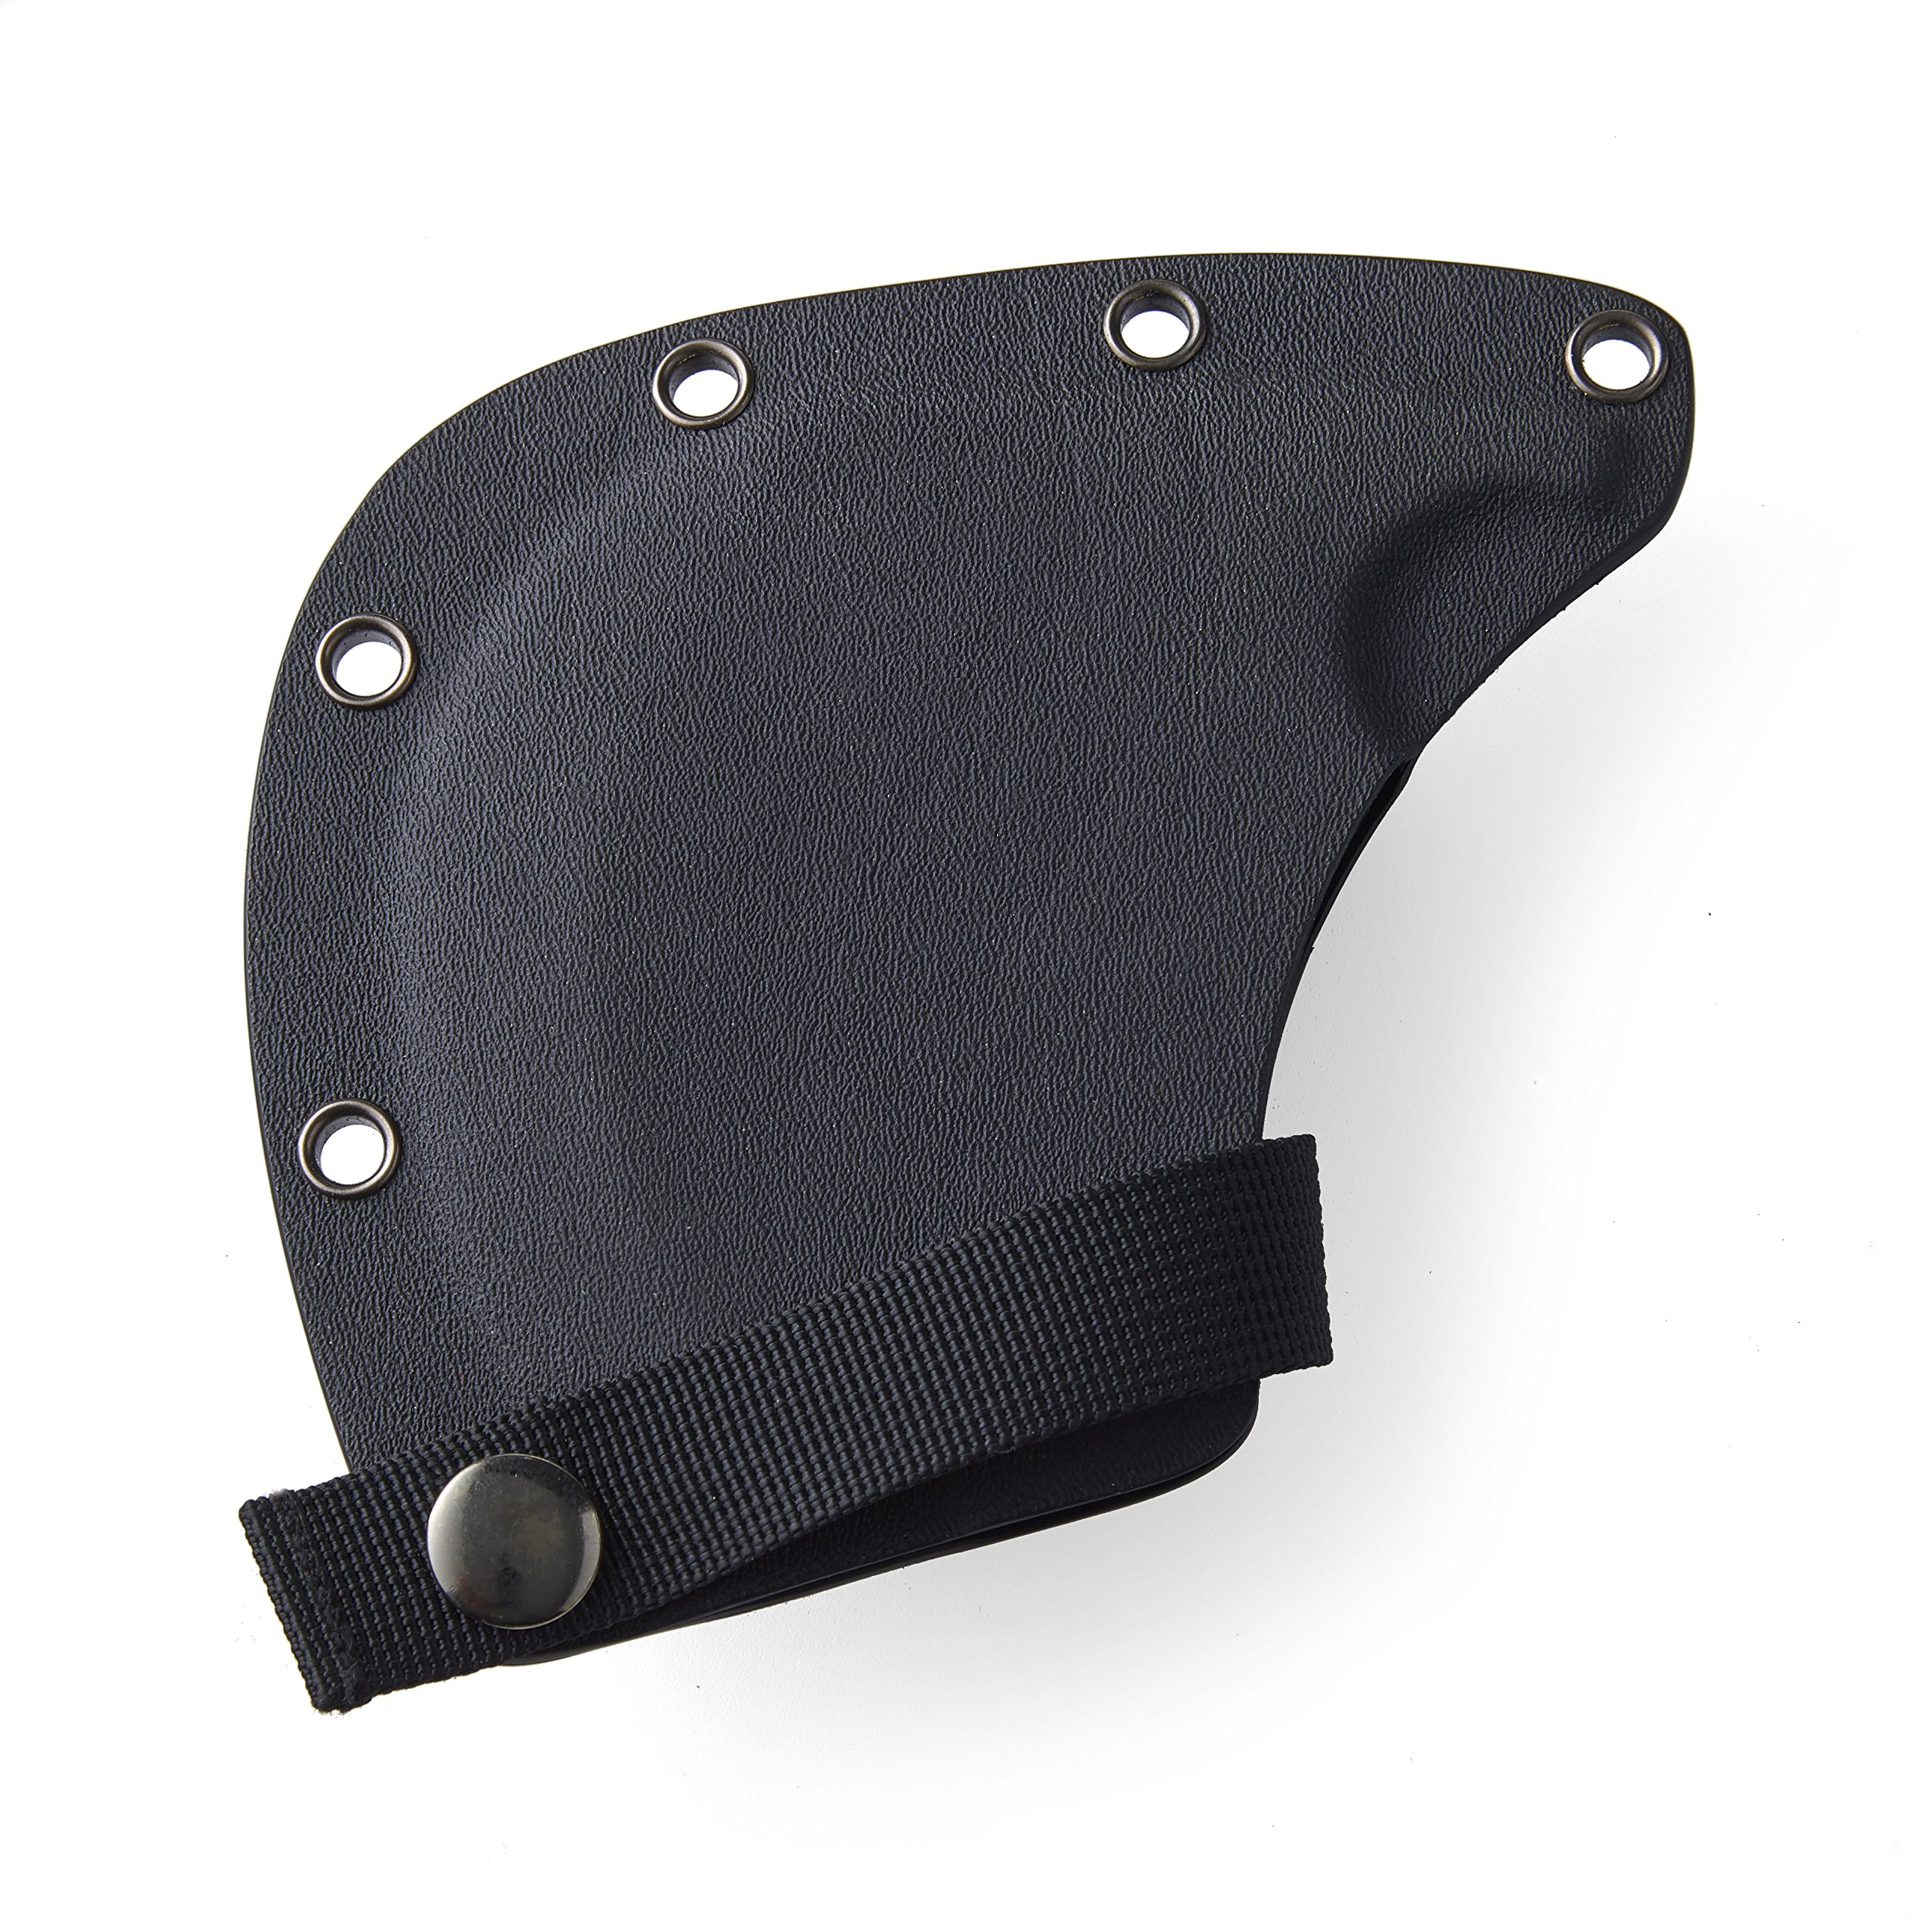 Off Grid Tools OGT-SAKYDEX Kydex Sheath for Survival Axe & Survival Axe Elite, Black